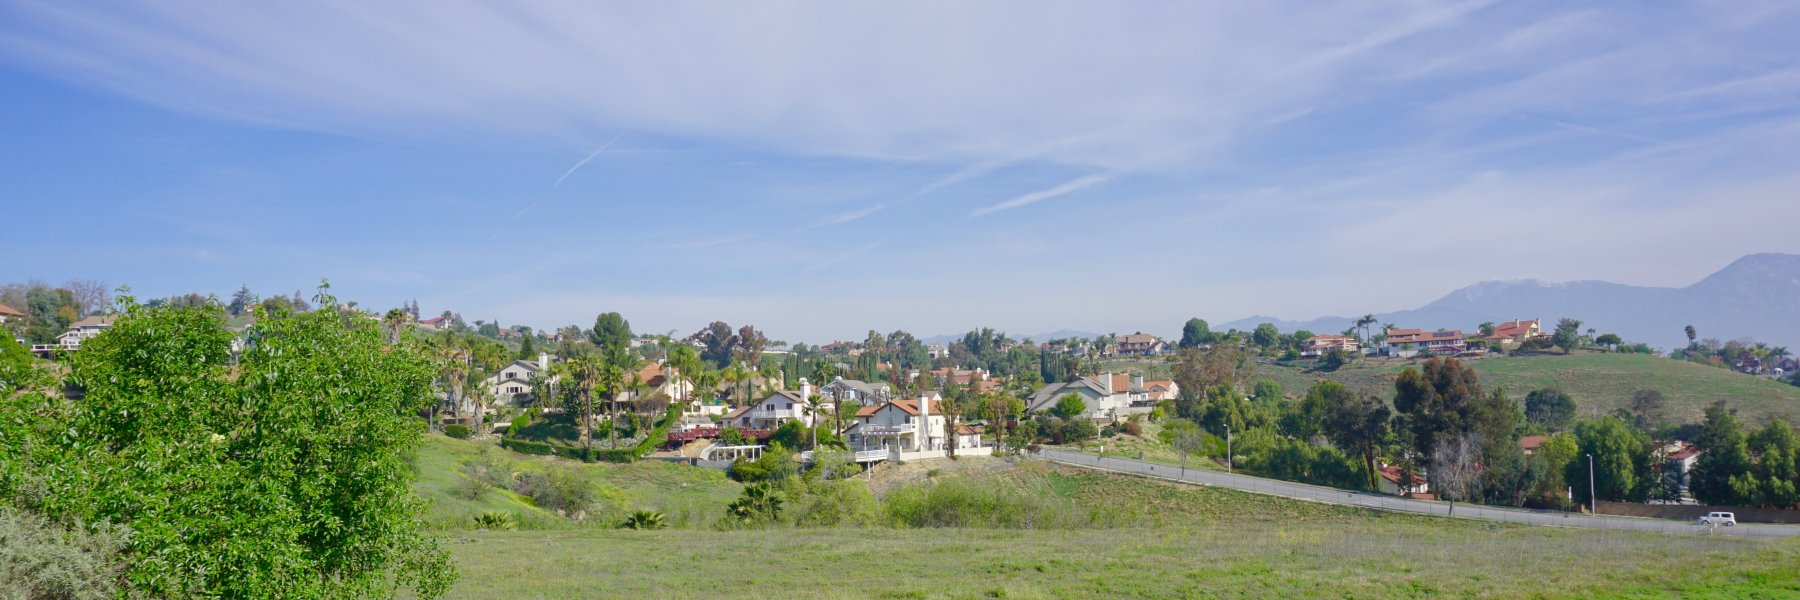 Rolling Ridge is a community of homes in Chino Hills California